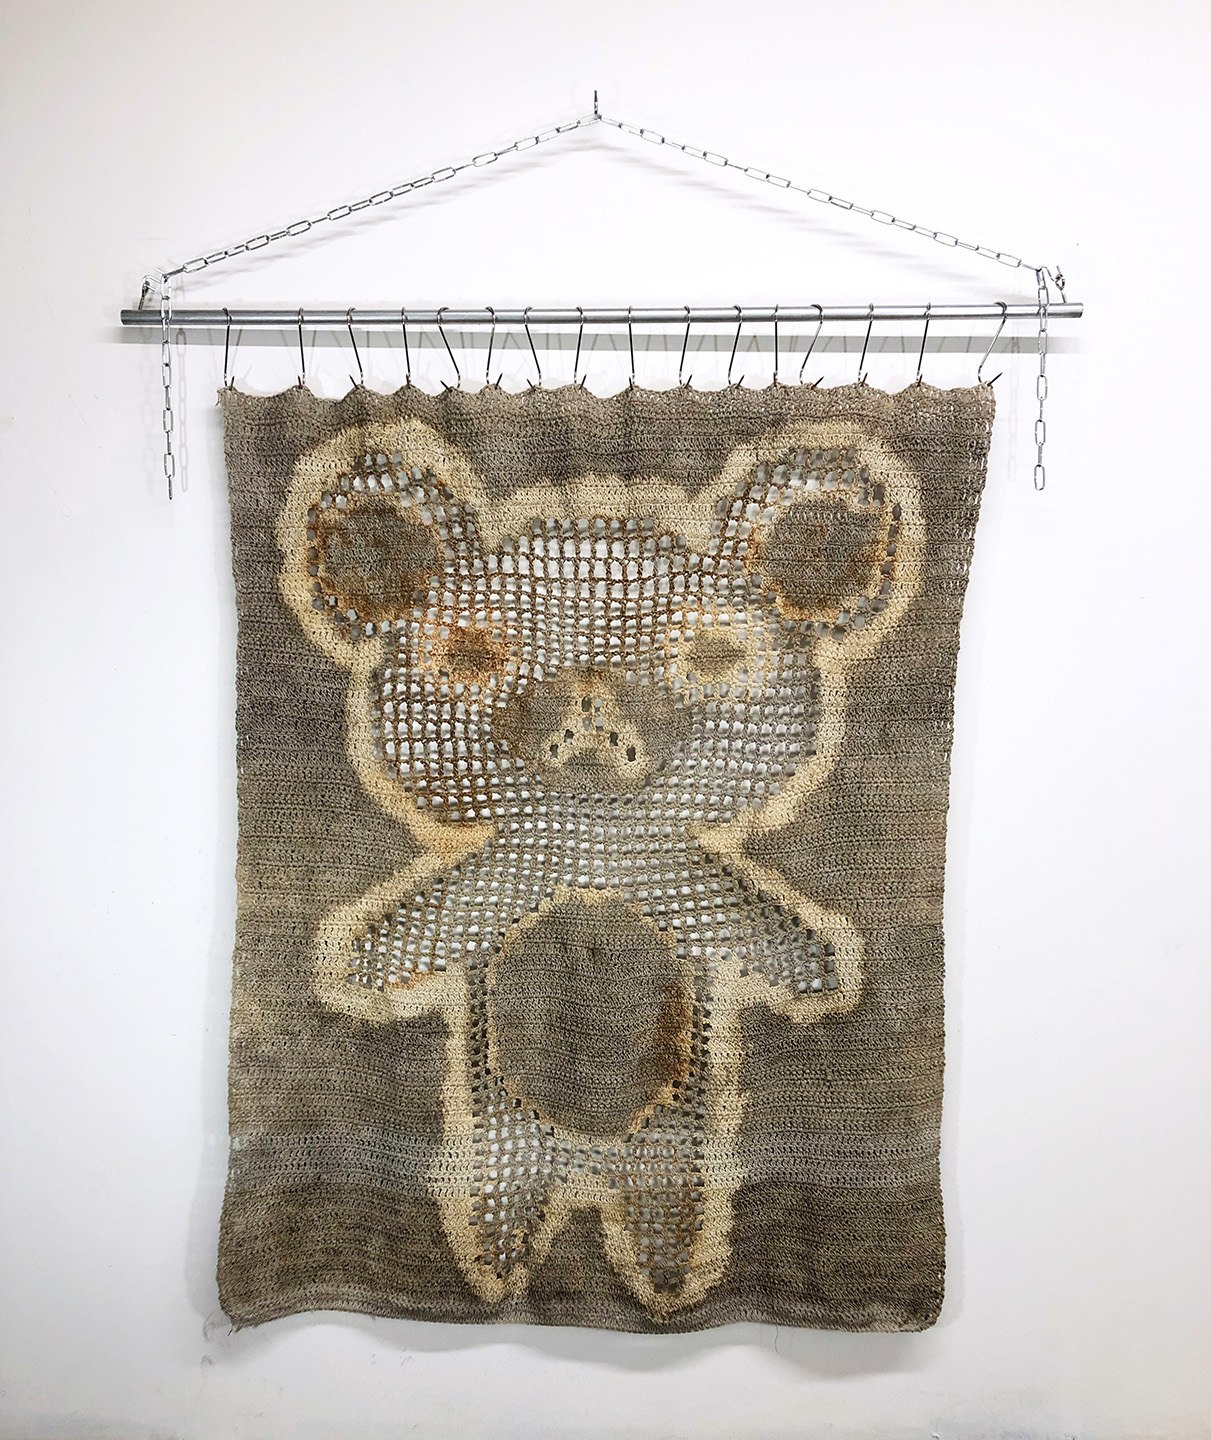 ghost , 2019  Cotton twine dyed with bleach, soil, and rust; metal pole, meat hooks, chain, hardware  56 x 80 x 2 inches